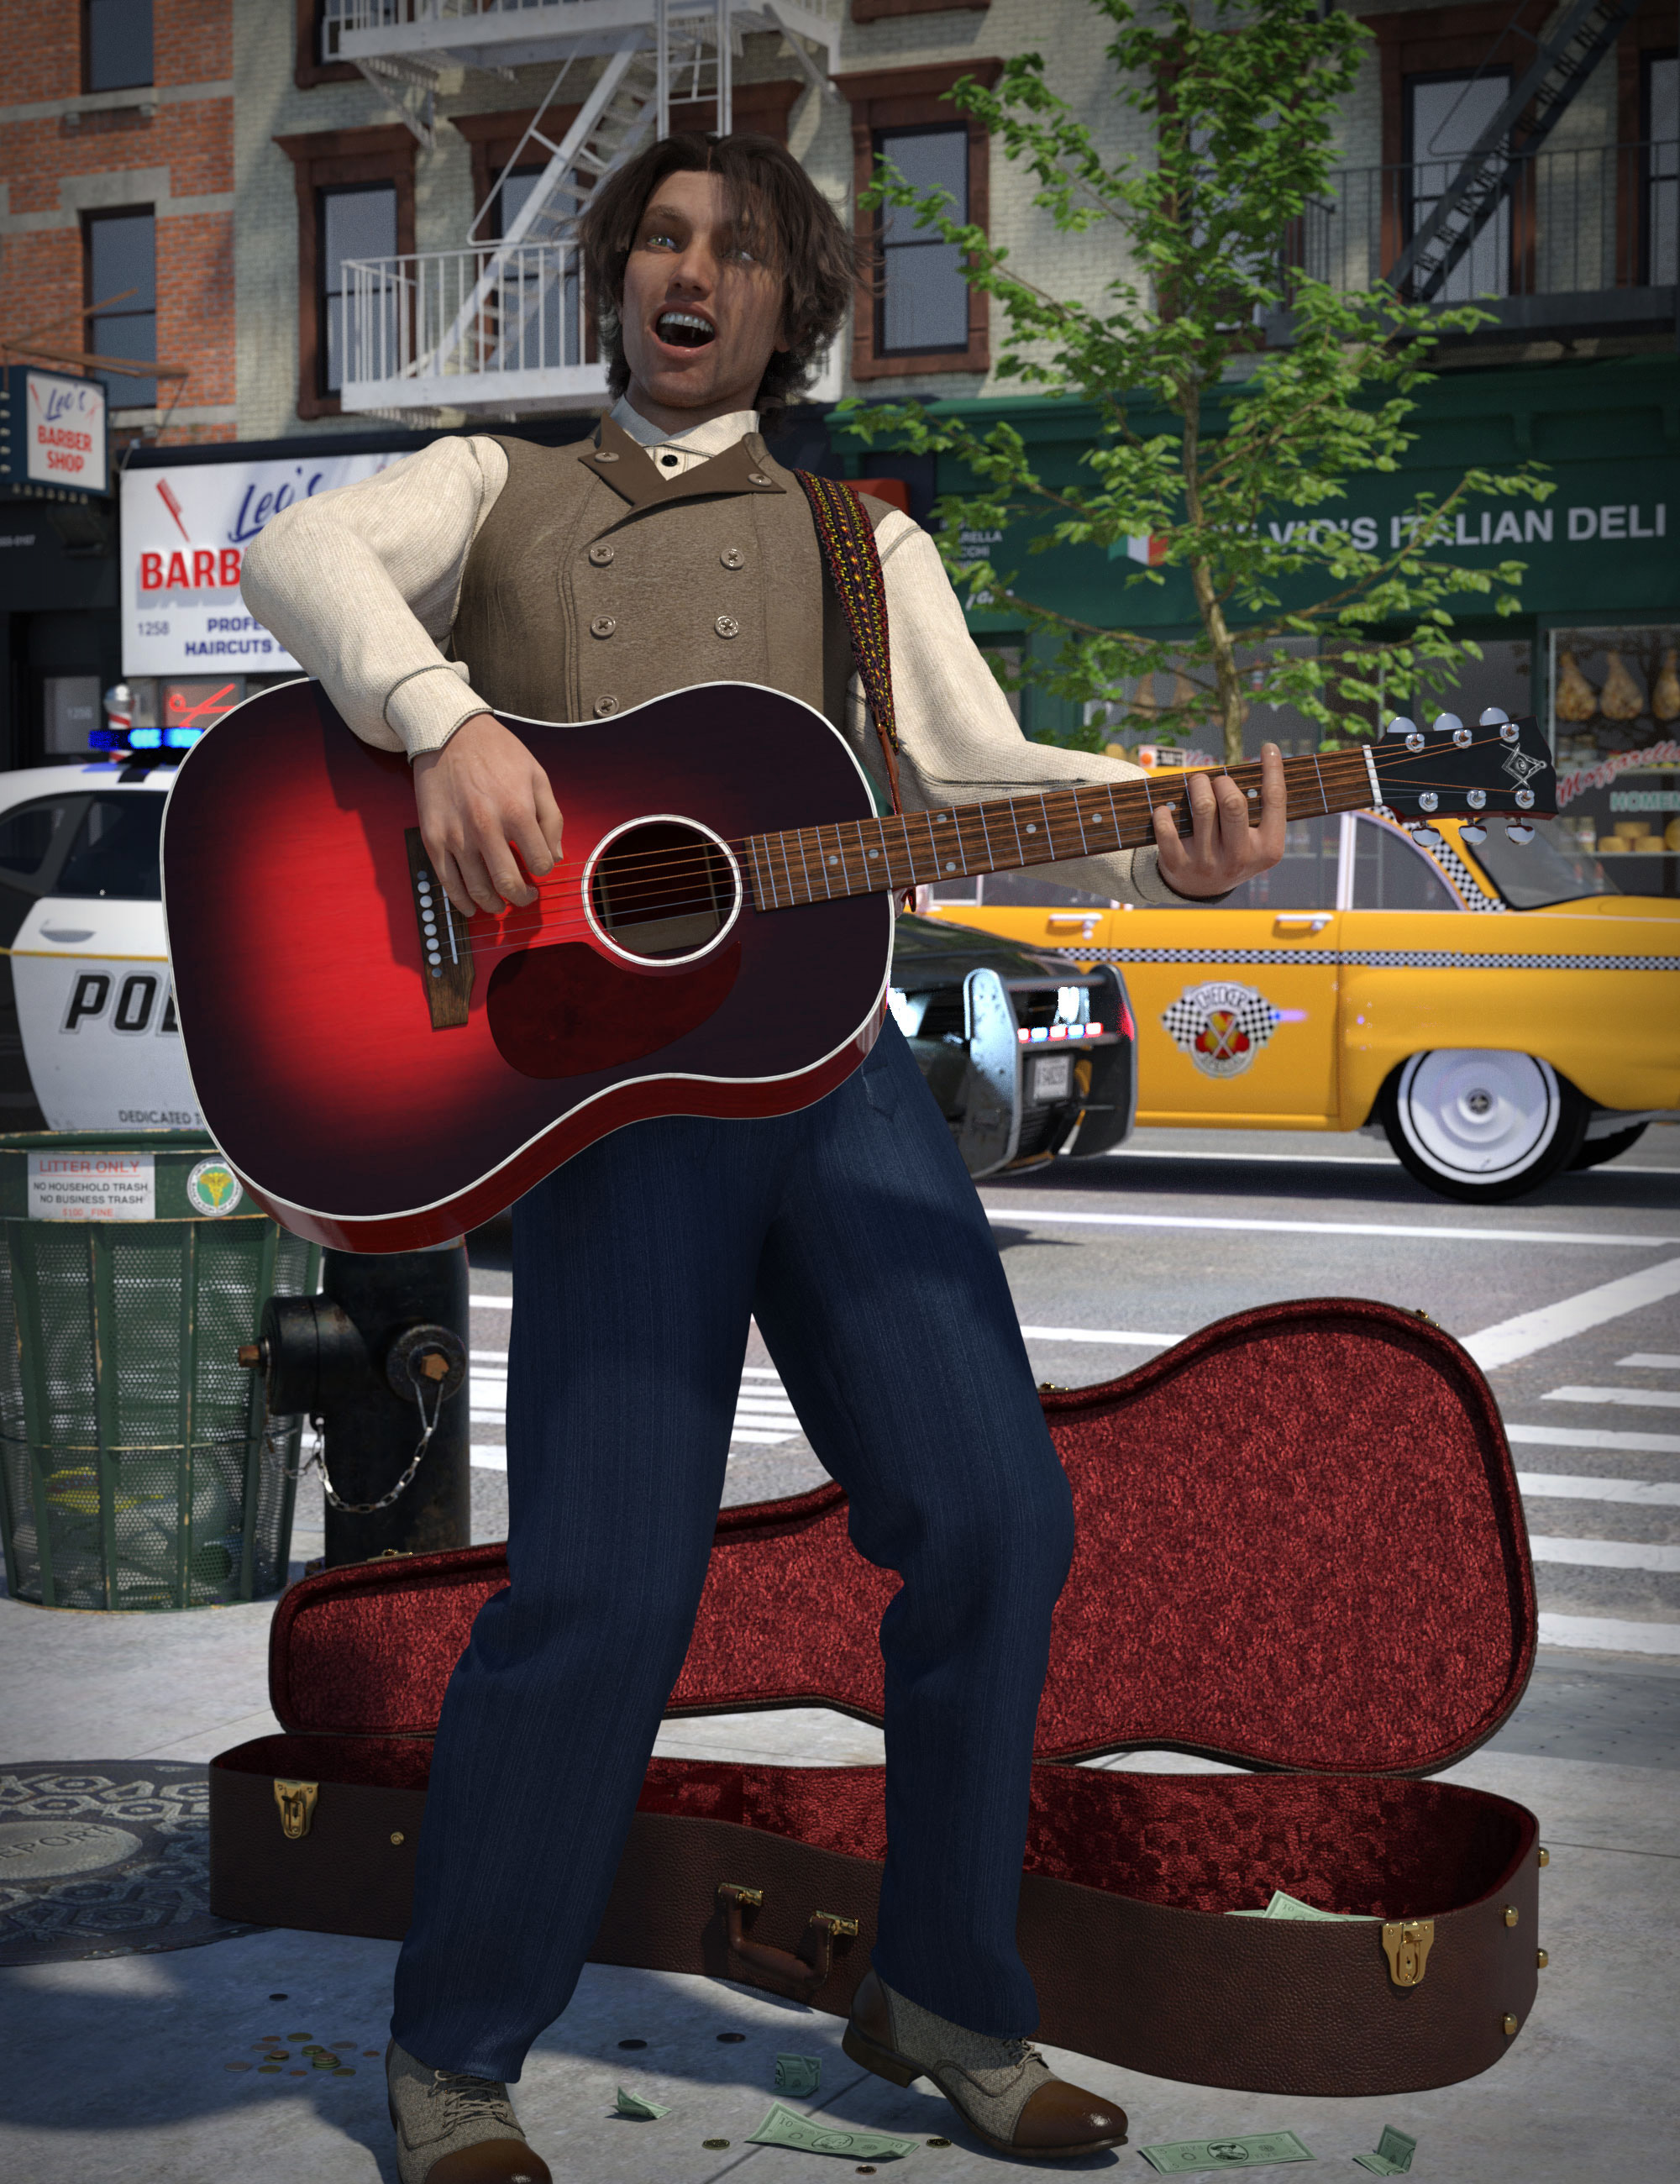 Acoustic Guitar and Poses for Genesis 8 by: The Alchemist, 3D Models by Daz 3D